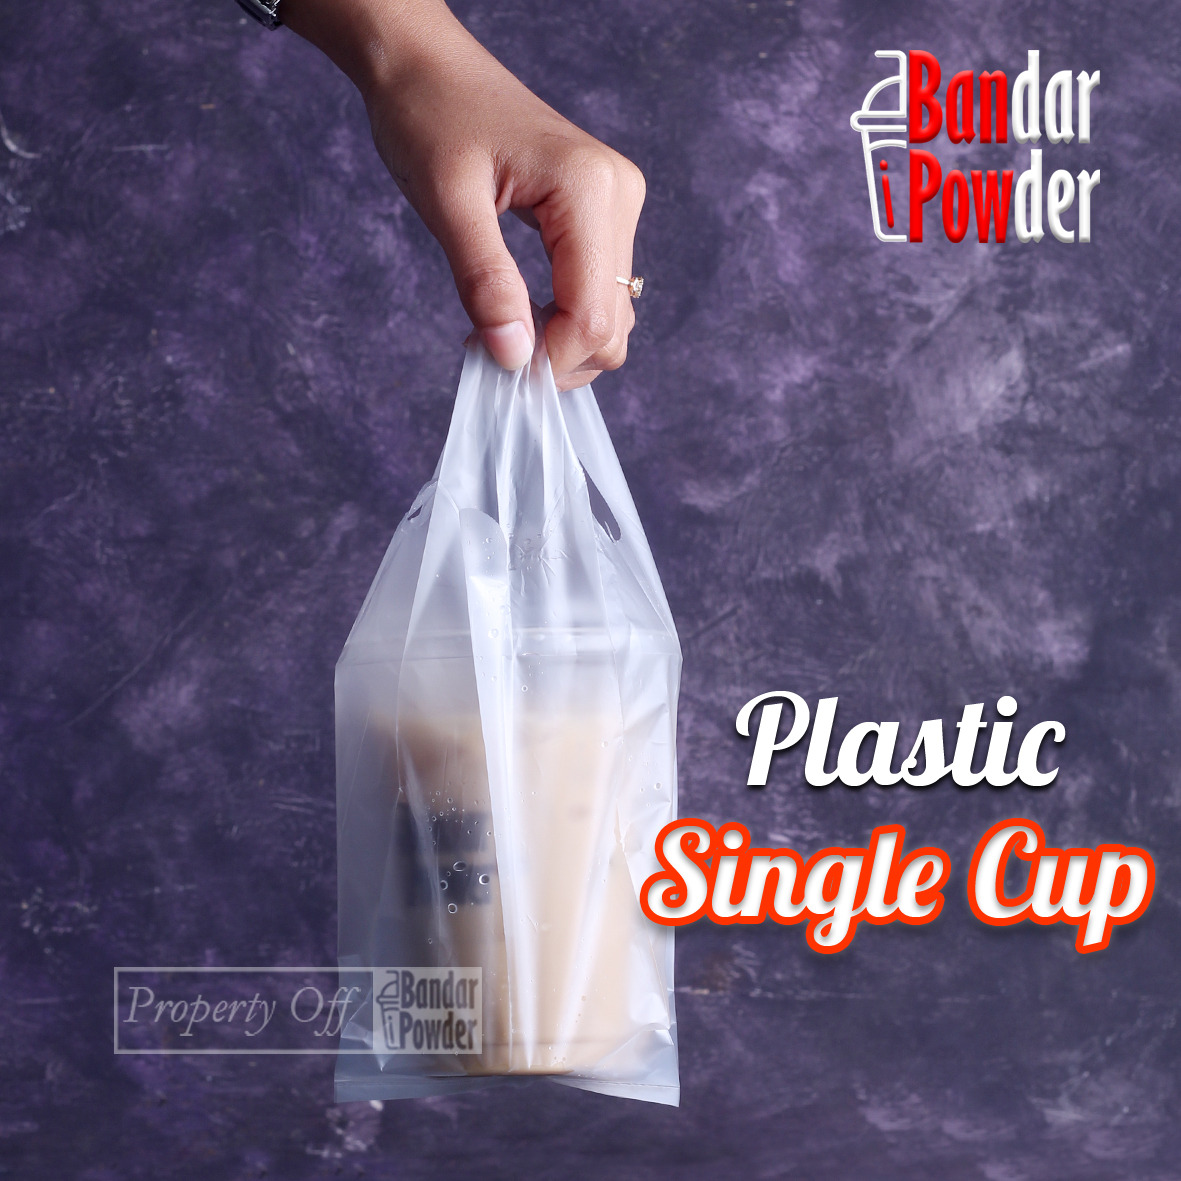 Jual Single Cup Take Away dan Gelas Plastik Murah Online